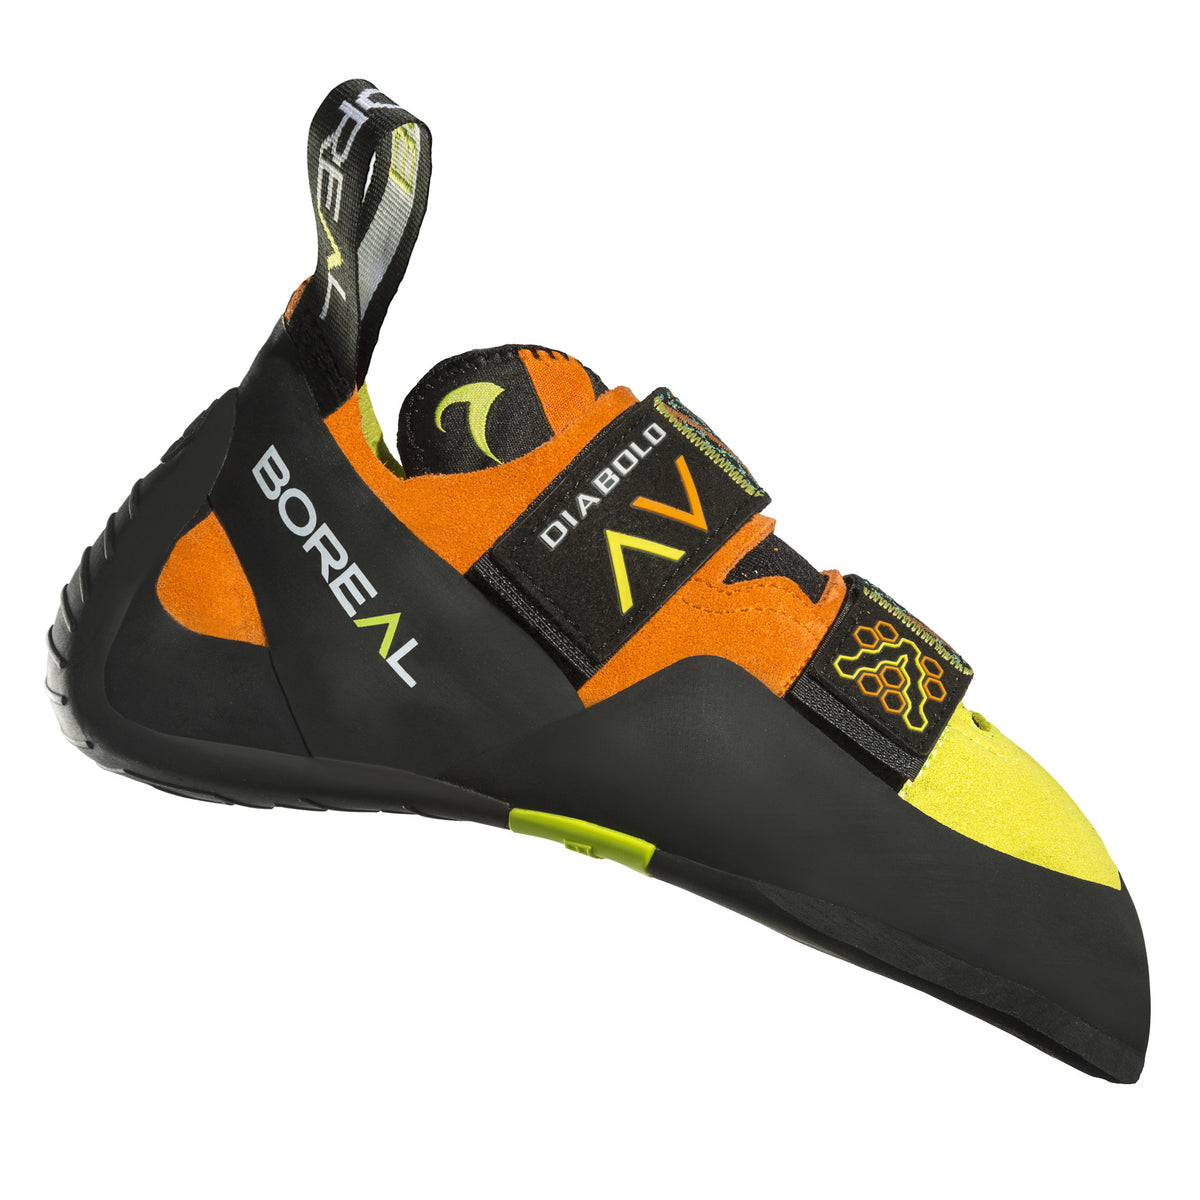 Boreal Diabolo VC climbing shoe, side view, in orange, yellow and black colours